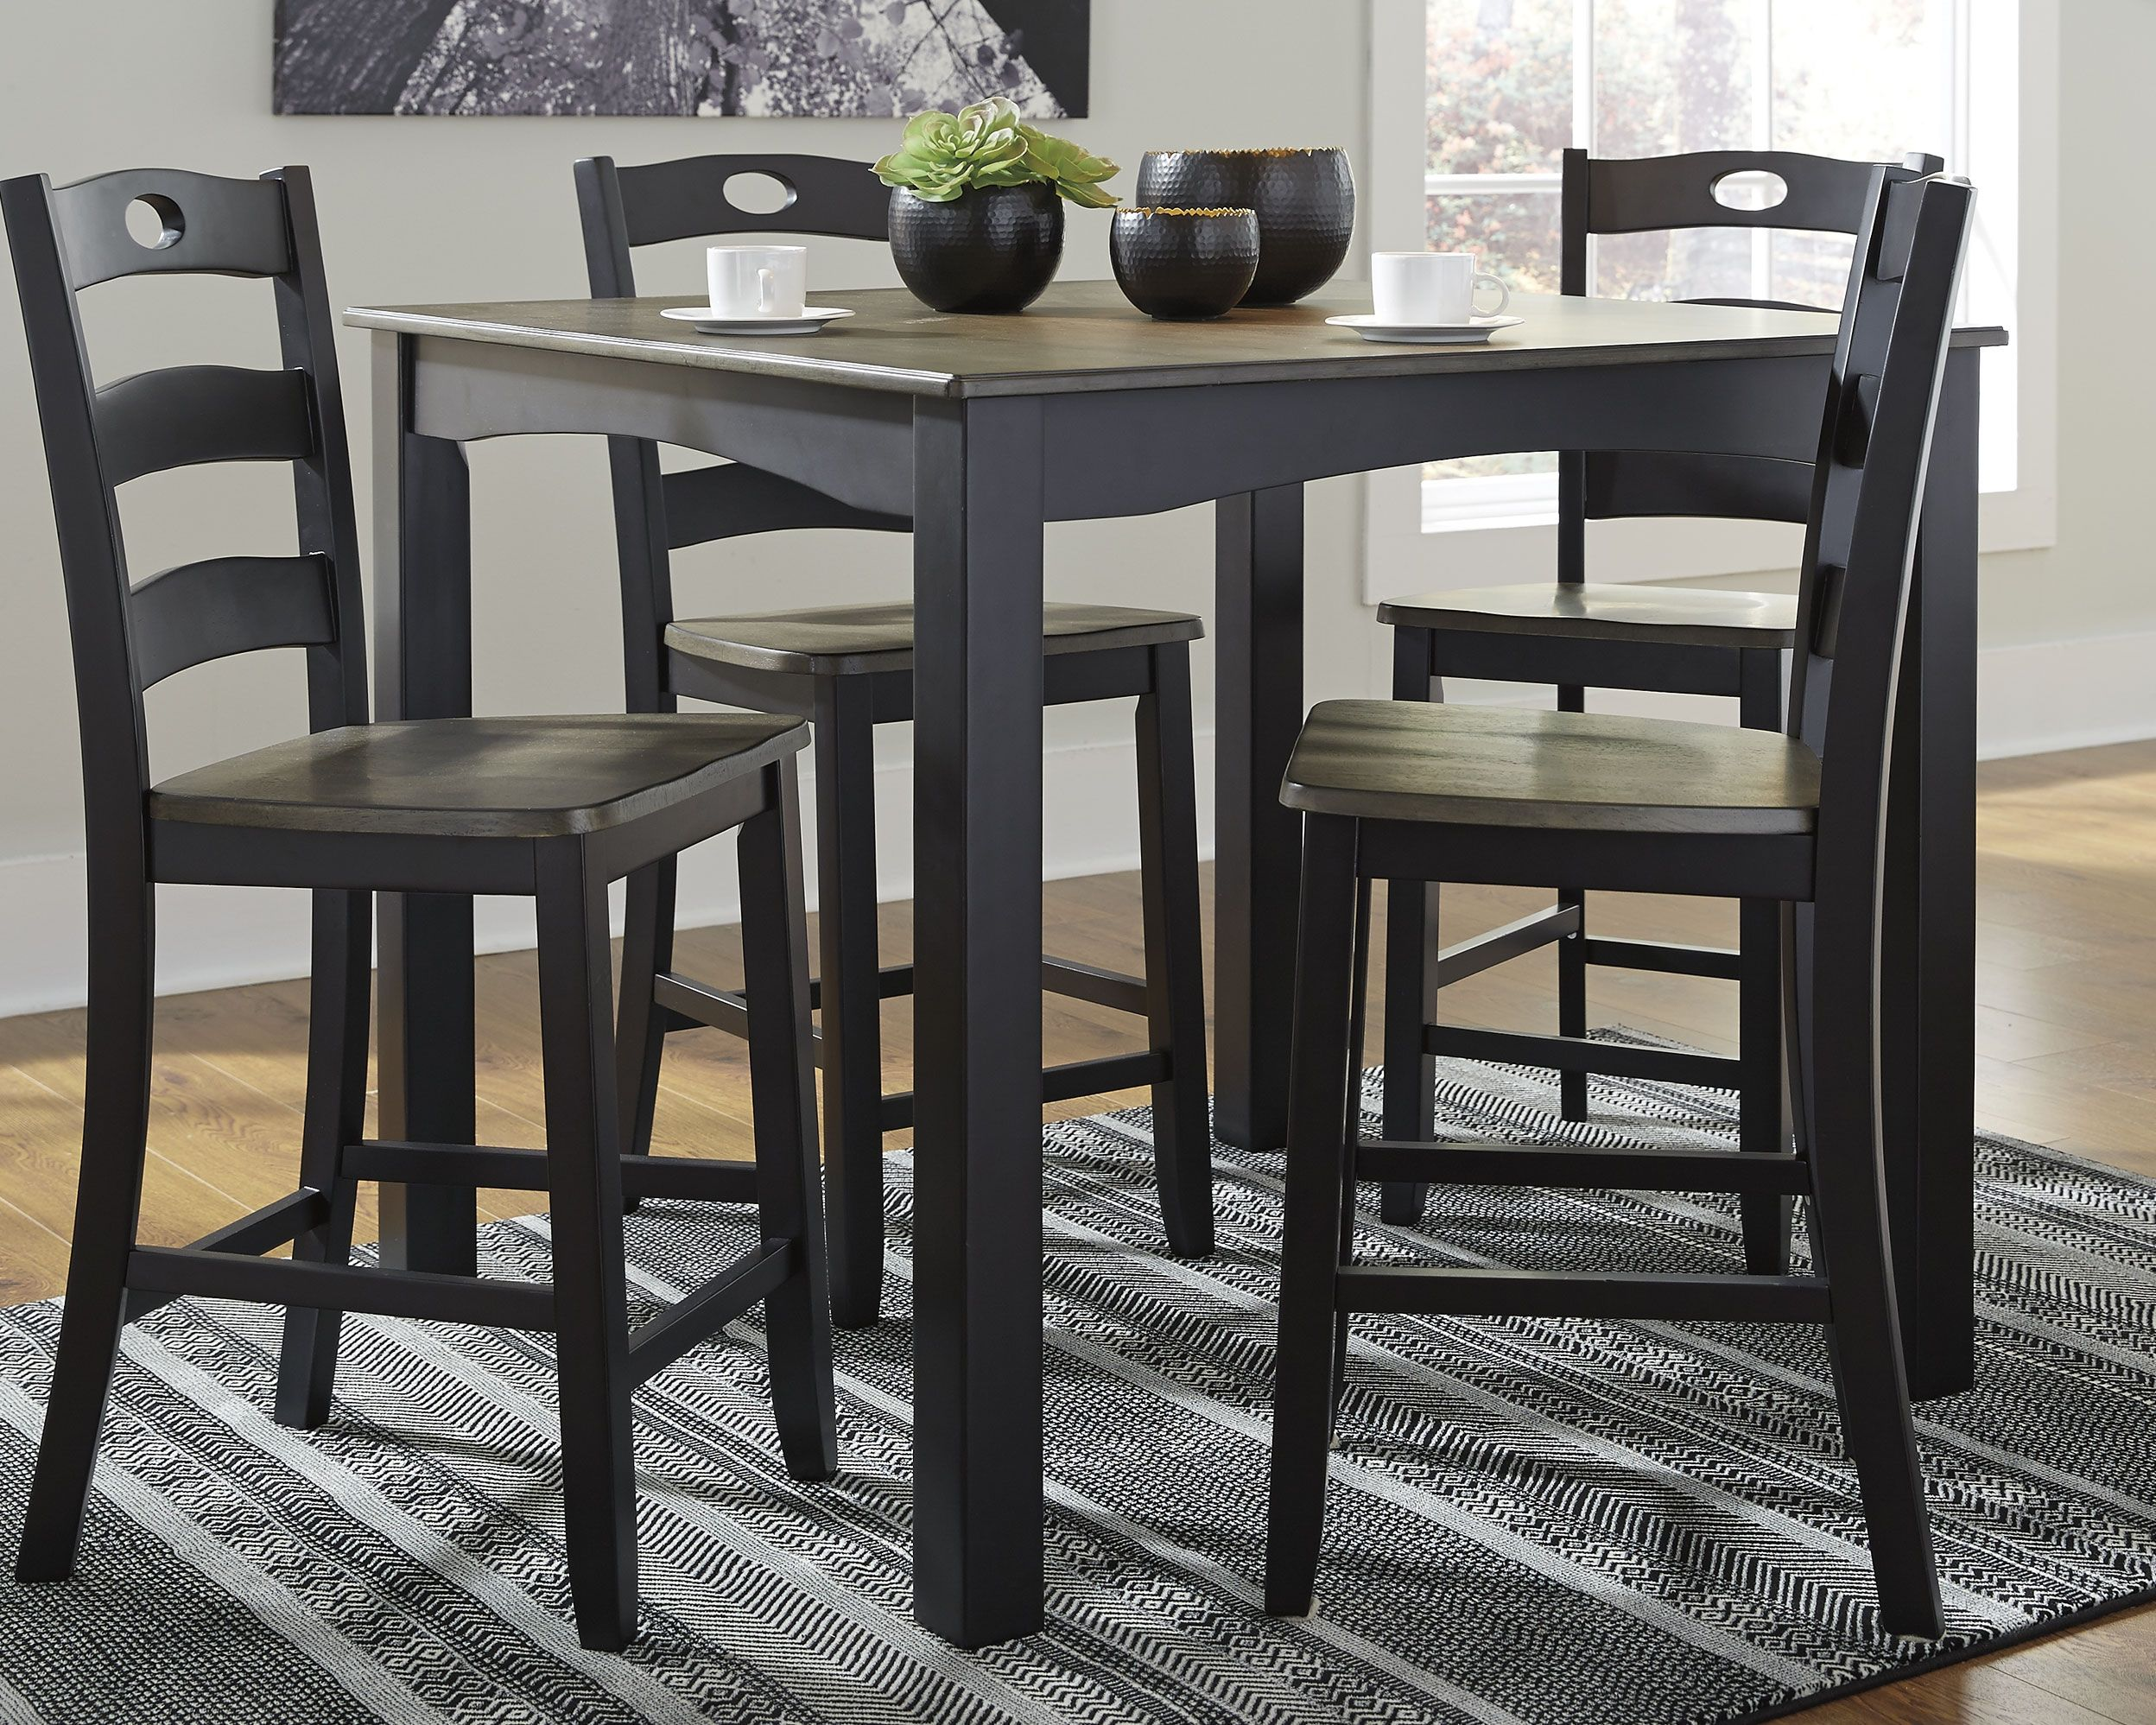 Serving Up A Cottage Chic Style With Sophistication This Table And Bar Stools Tall Kitchen Table Counter Height Dining Room Tables Counter Height Dining Table